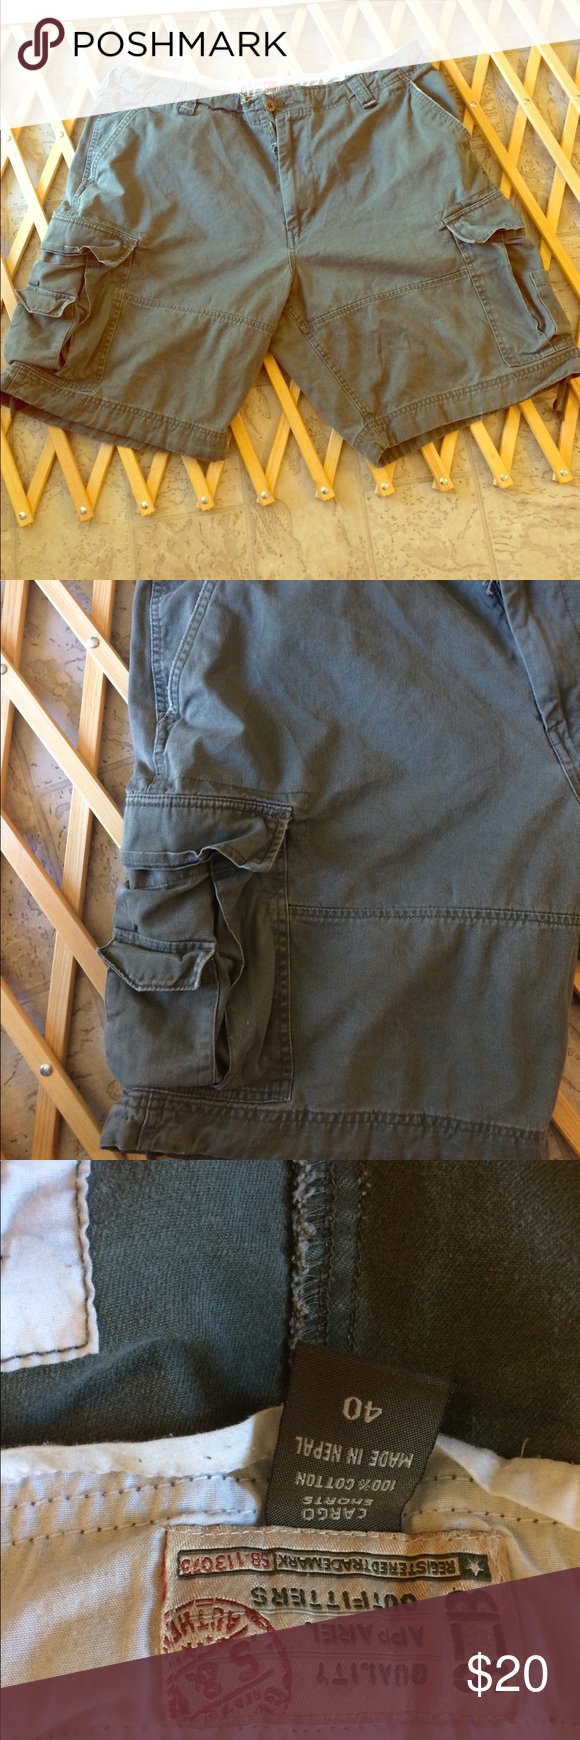 Quality apparel outfitters men's size 40 This is a pair of Quality apparel outfitters cargo shorts men's size 40 ,dimensions are waist 44 inseam 10 1/2 length 22 100% cotton. Quality apparel outfitters Shorts Cargos